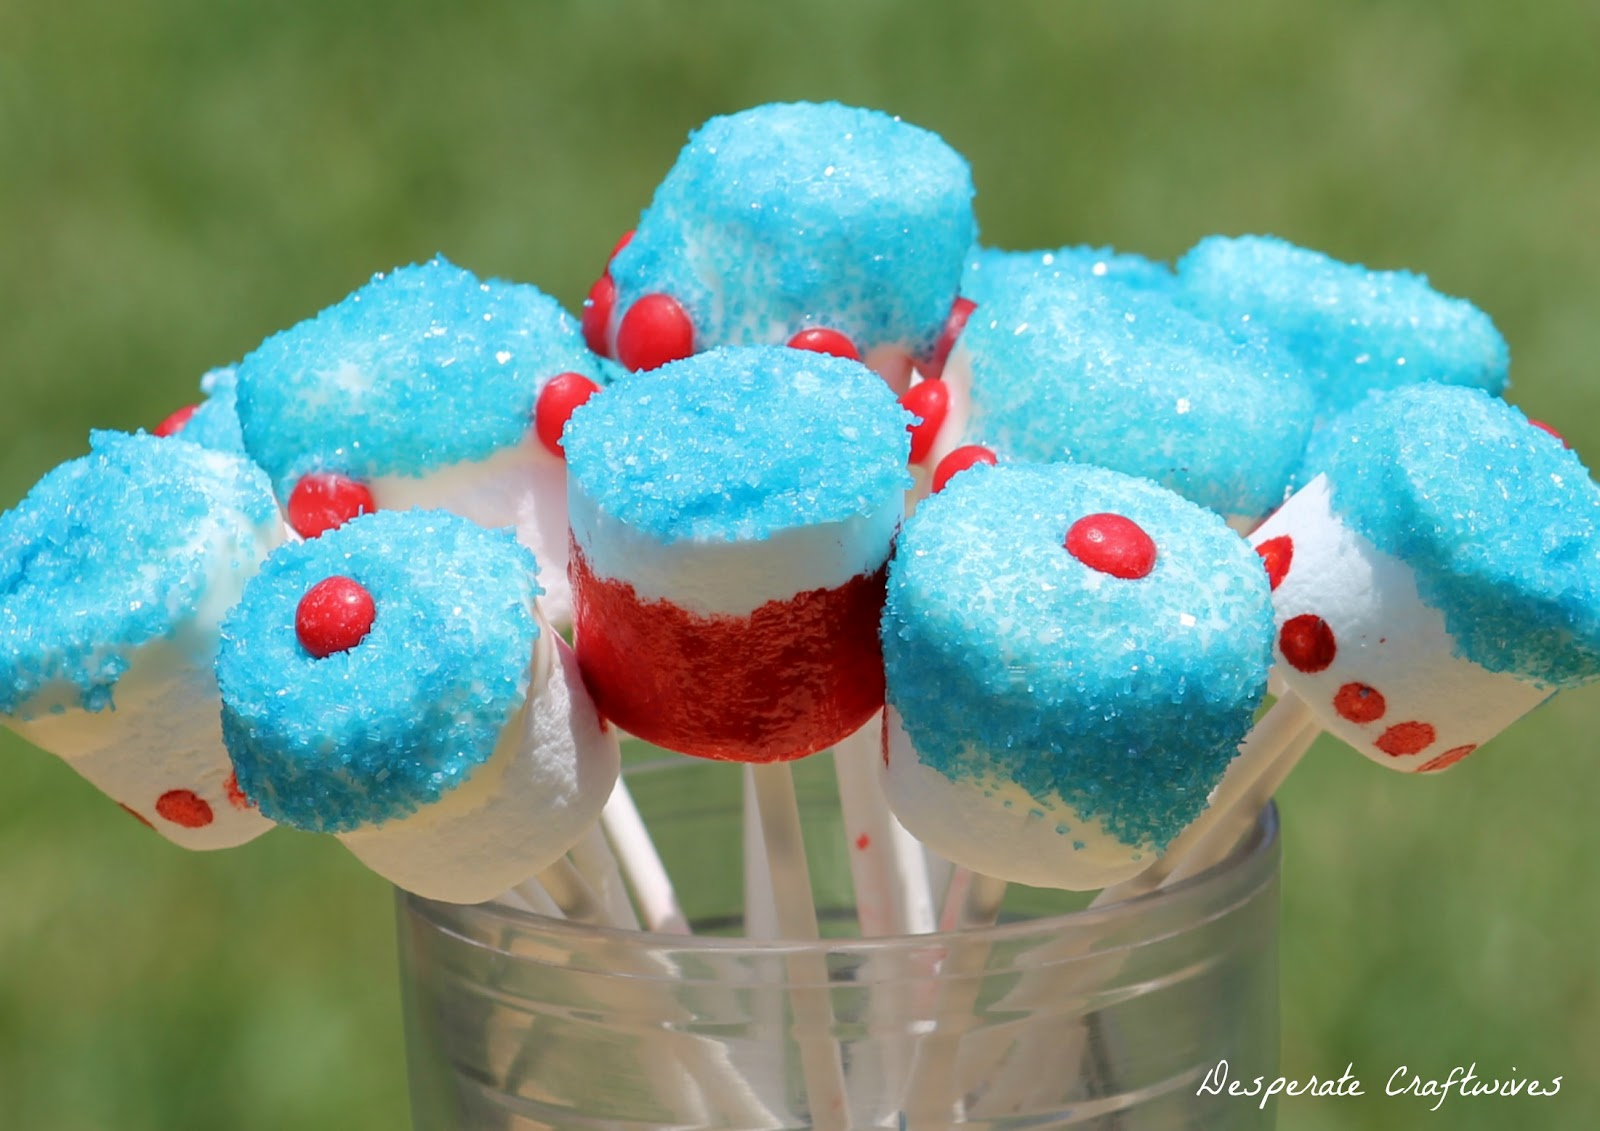 Desperate Craftwives: Memorial Day Marshmallow Pops